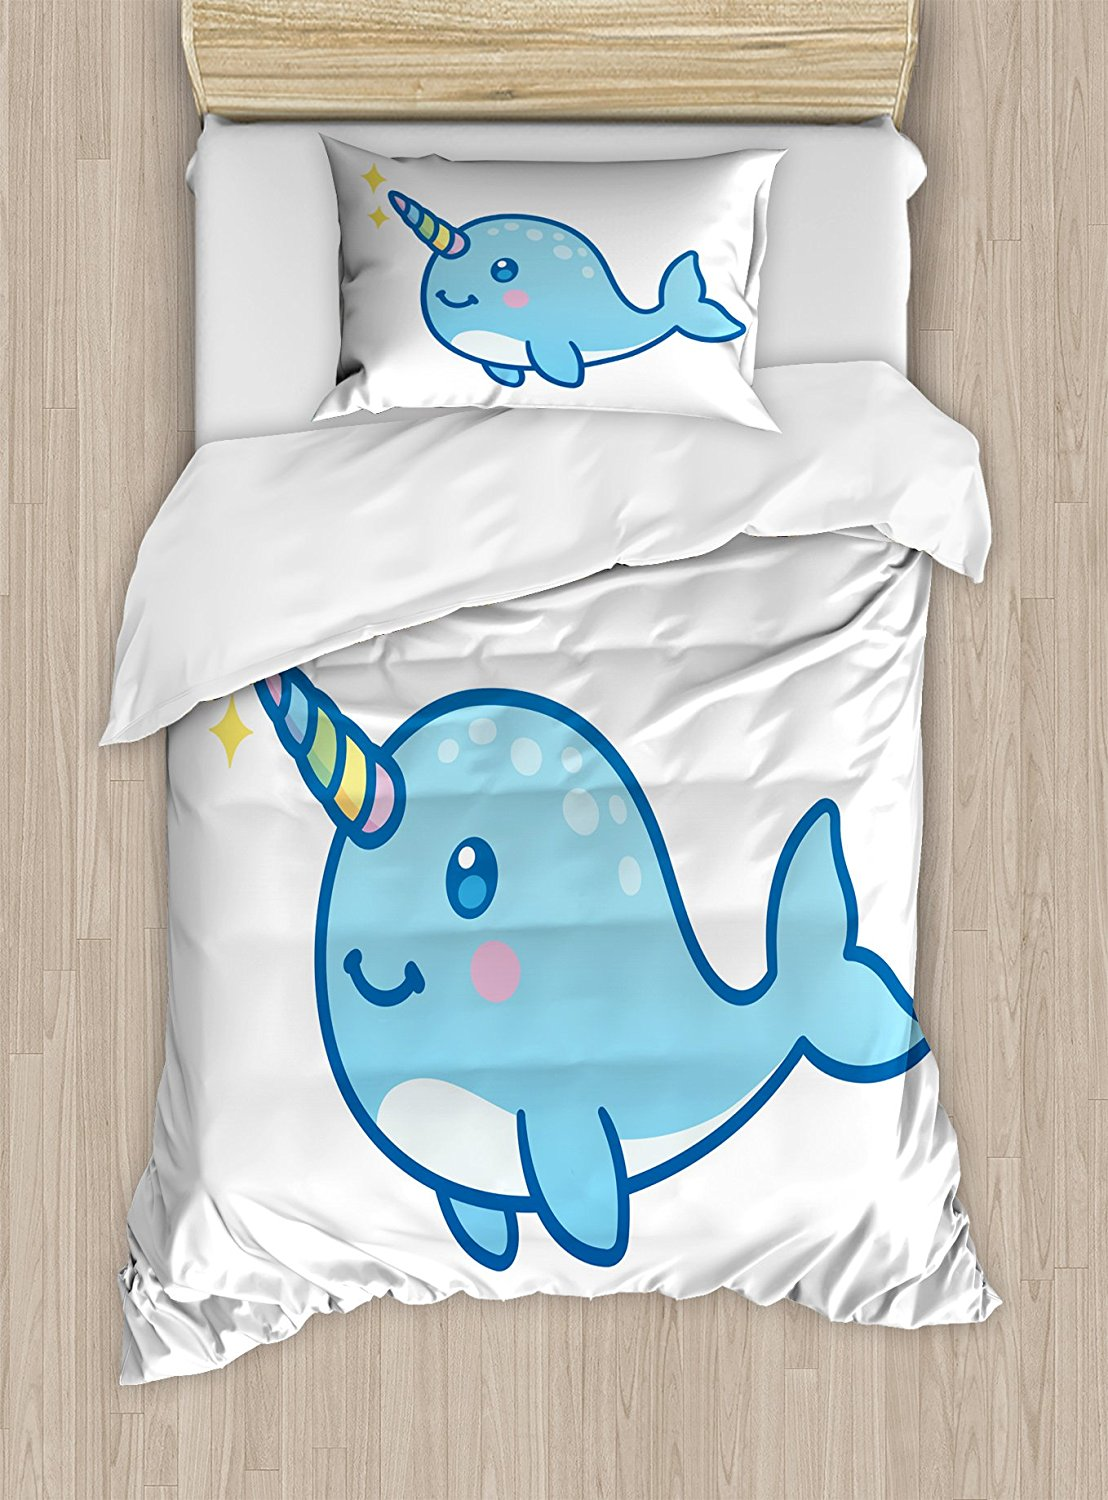 Narwhal Duvet Cover Set Cartoon Drawing Style Whale with Rainbow Horn Unicorn of the Ocean Arctic Animal 4 Piece Bedding Set